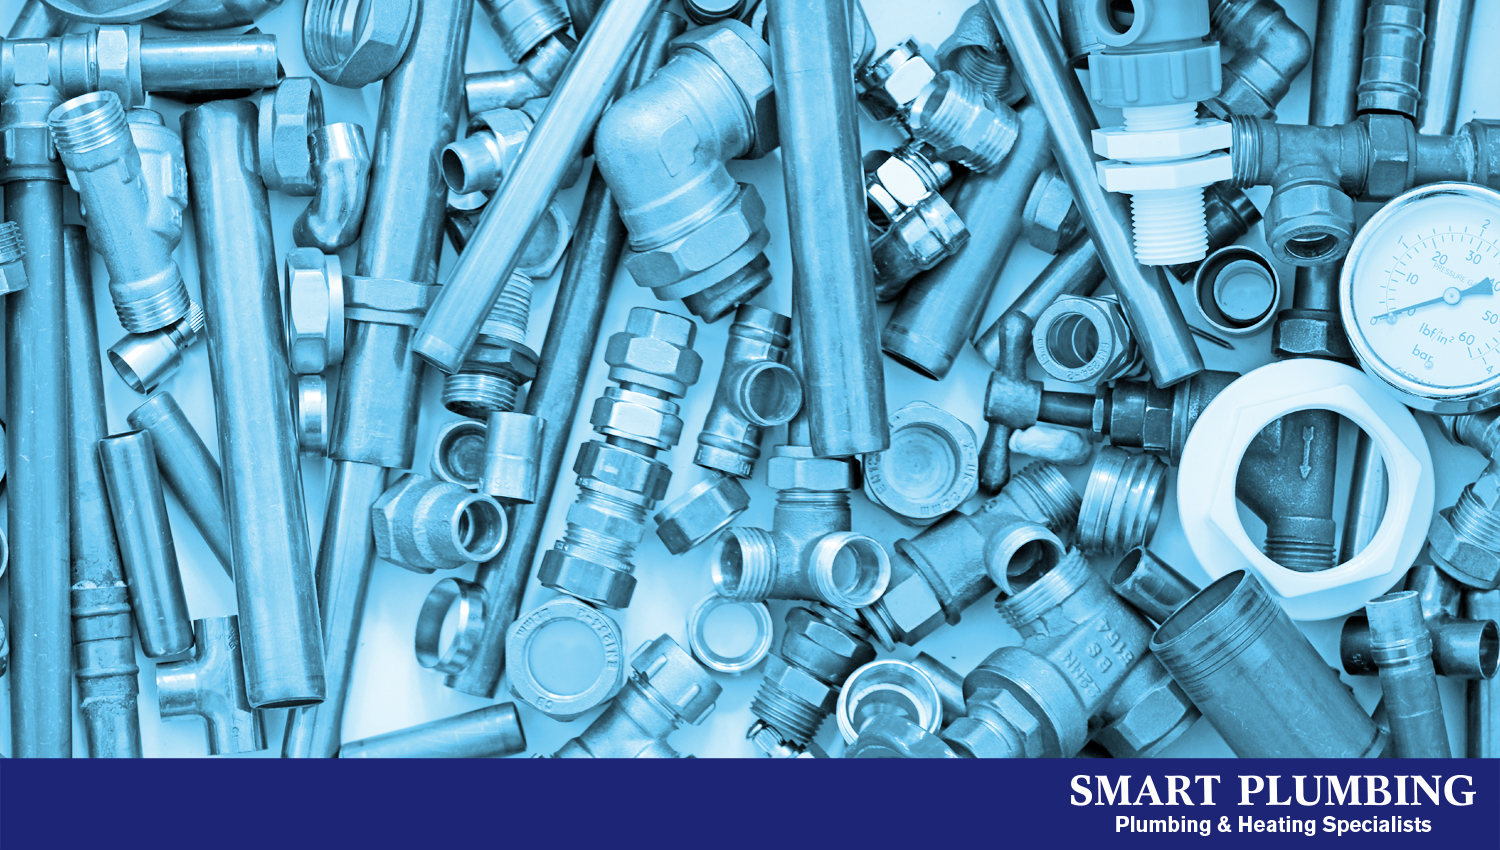 Smart Plumbing - Avoid Unnecessary Expenditure